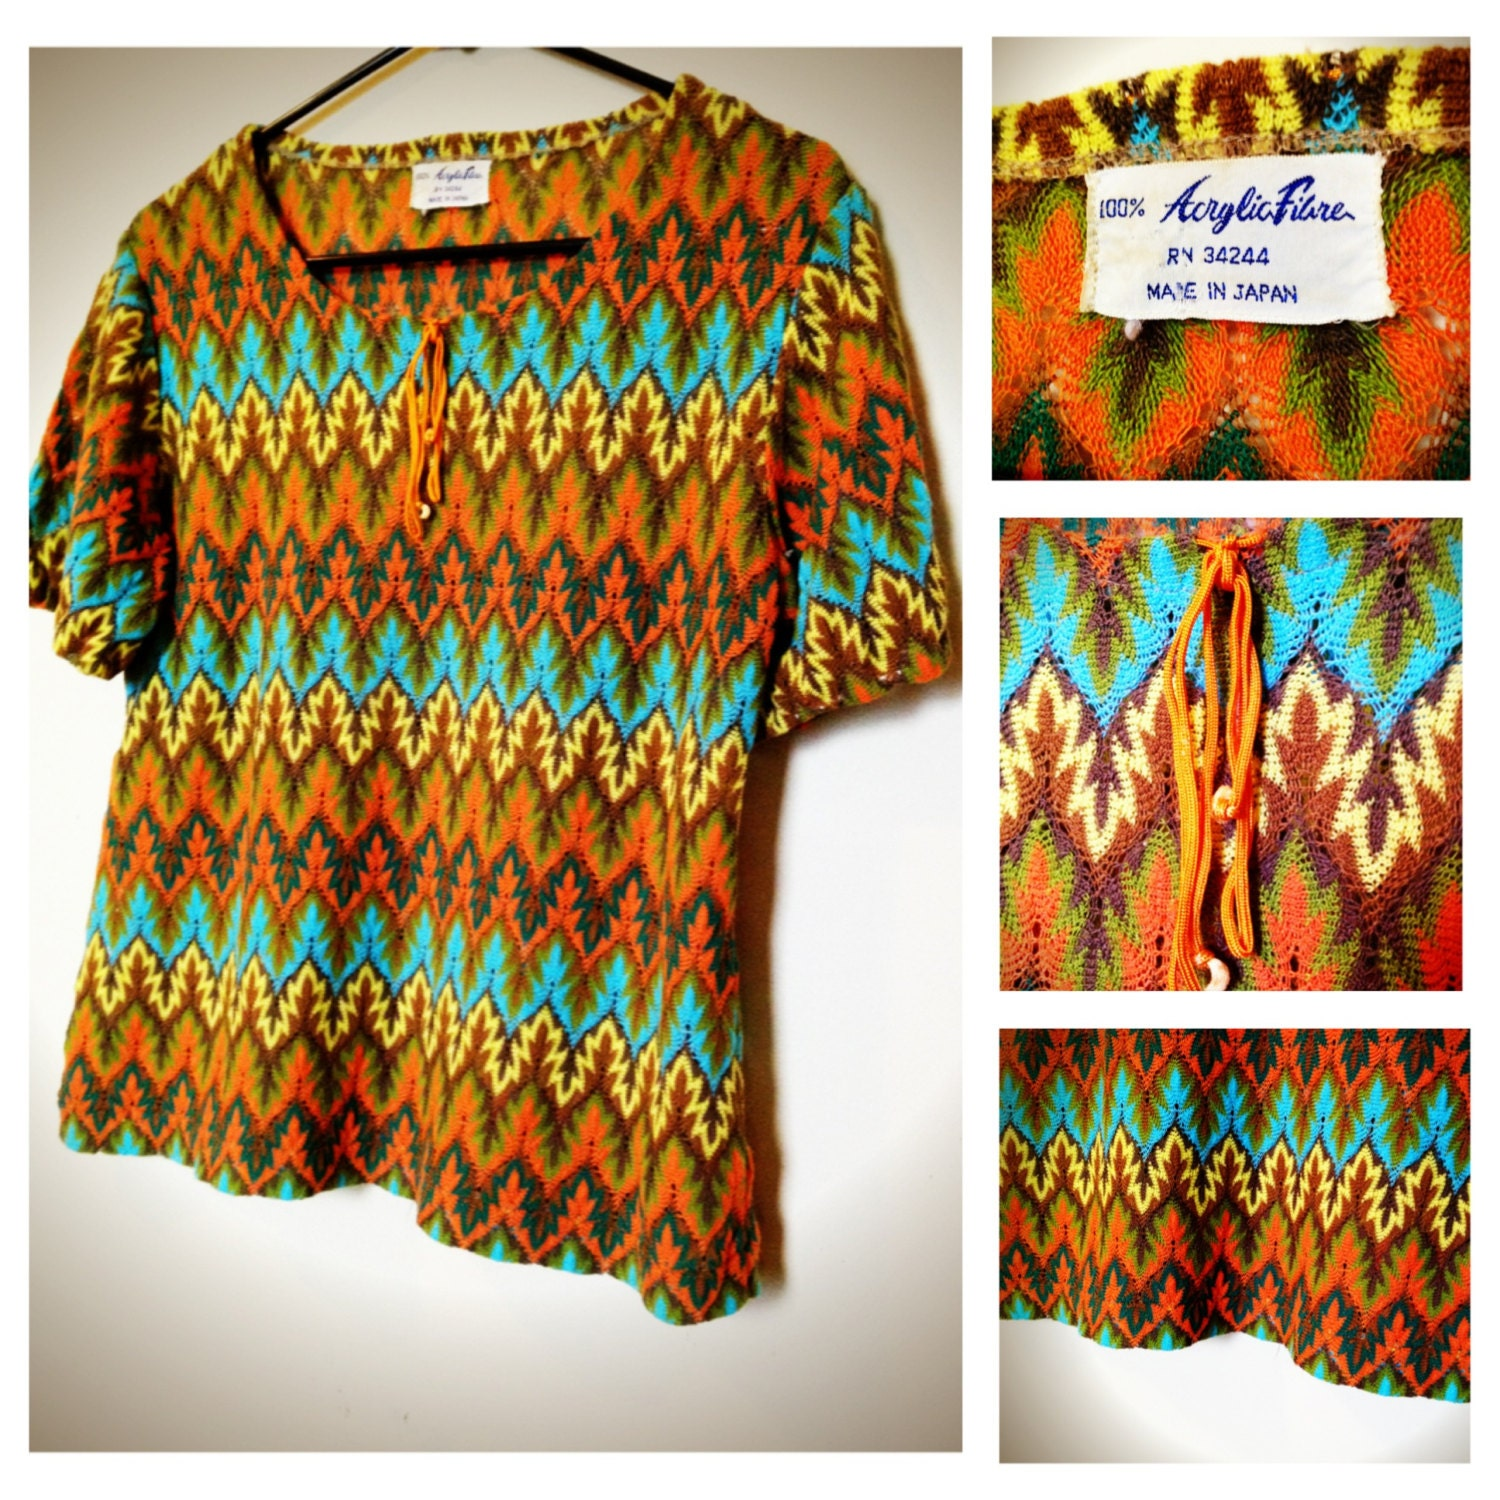 Vintage Clothing | Online Clothing Stores @ 1 T-shirts World